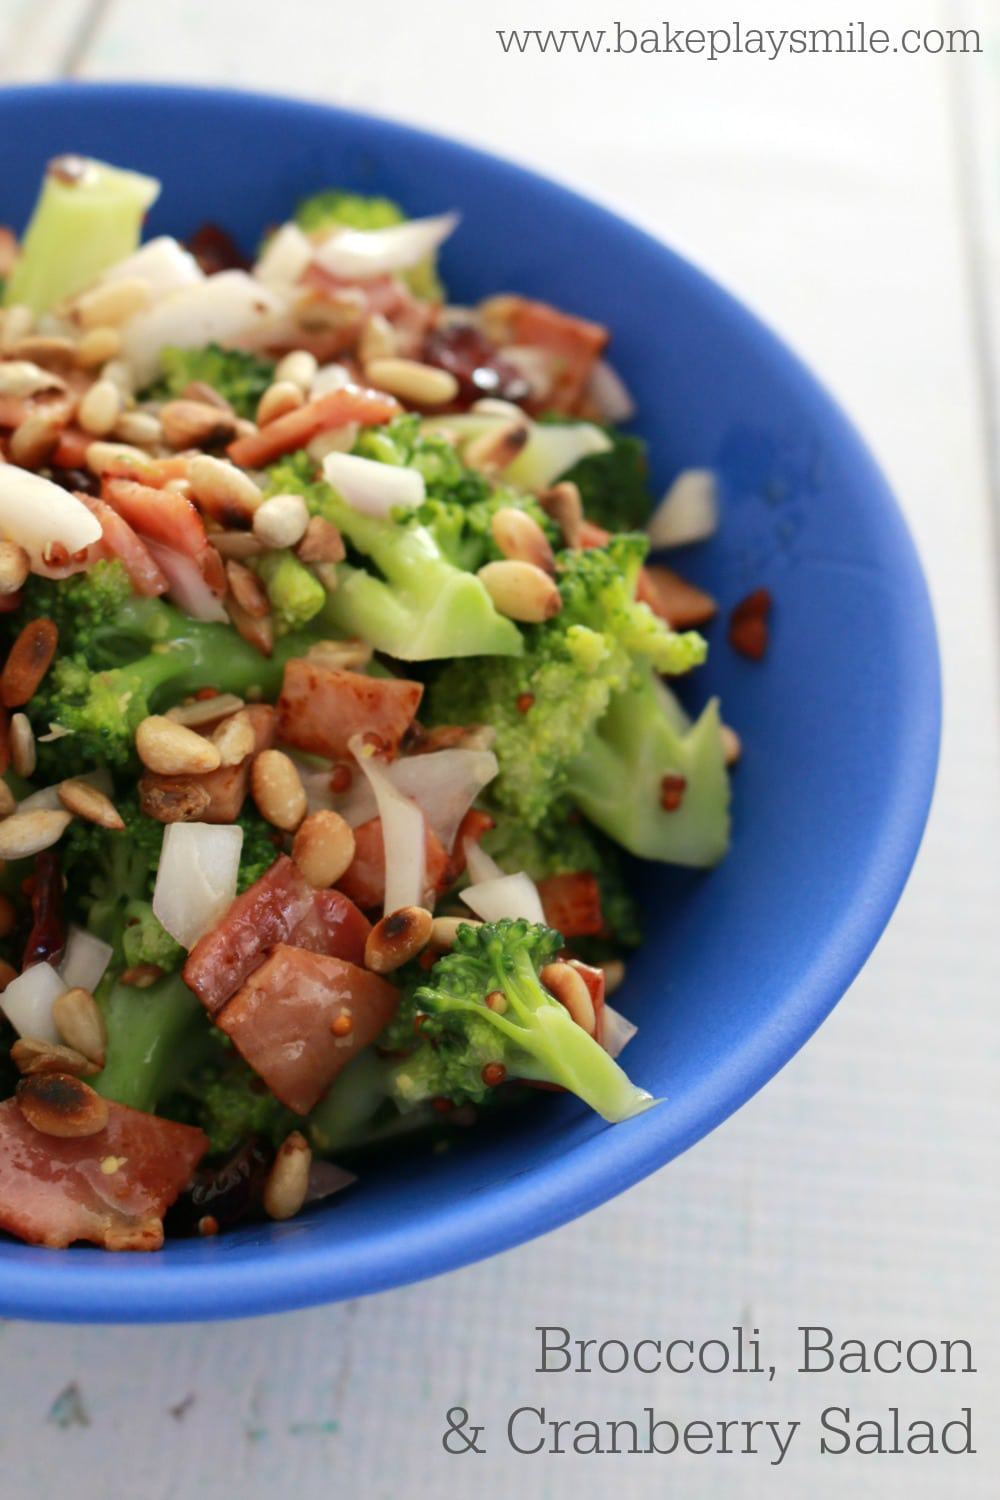 Broccoli, Bacon & Cranberry Salad